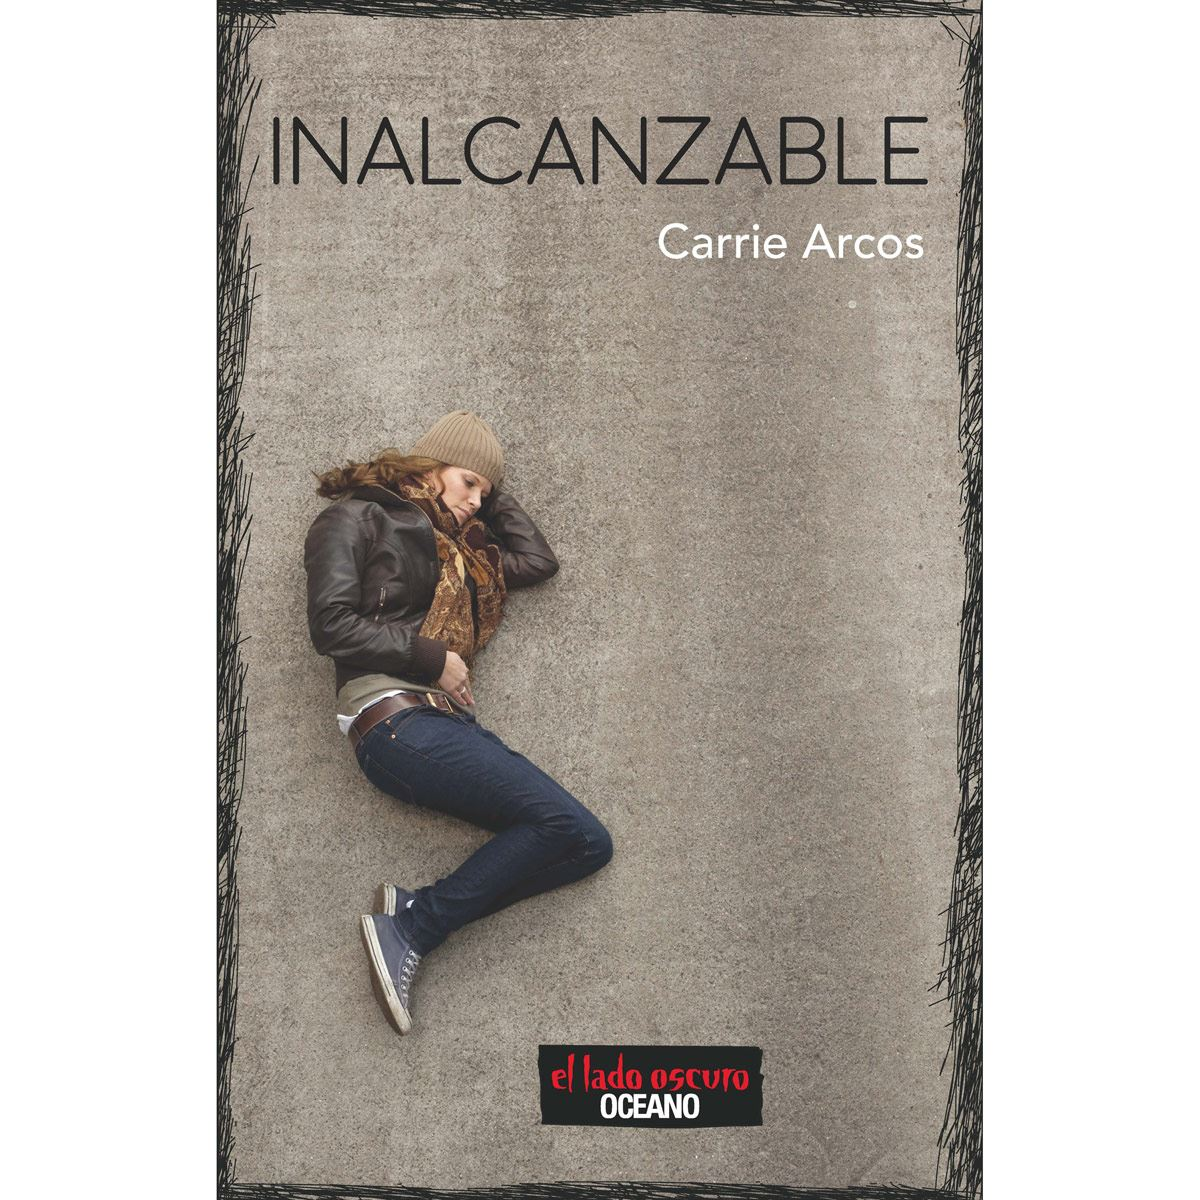 Inalcanzable